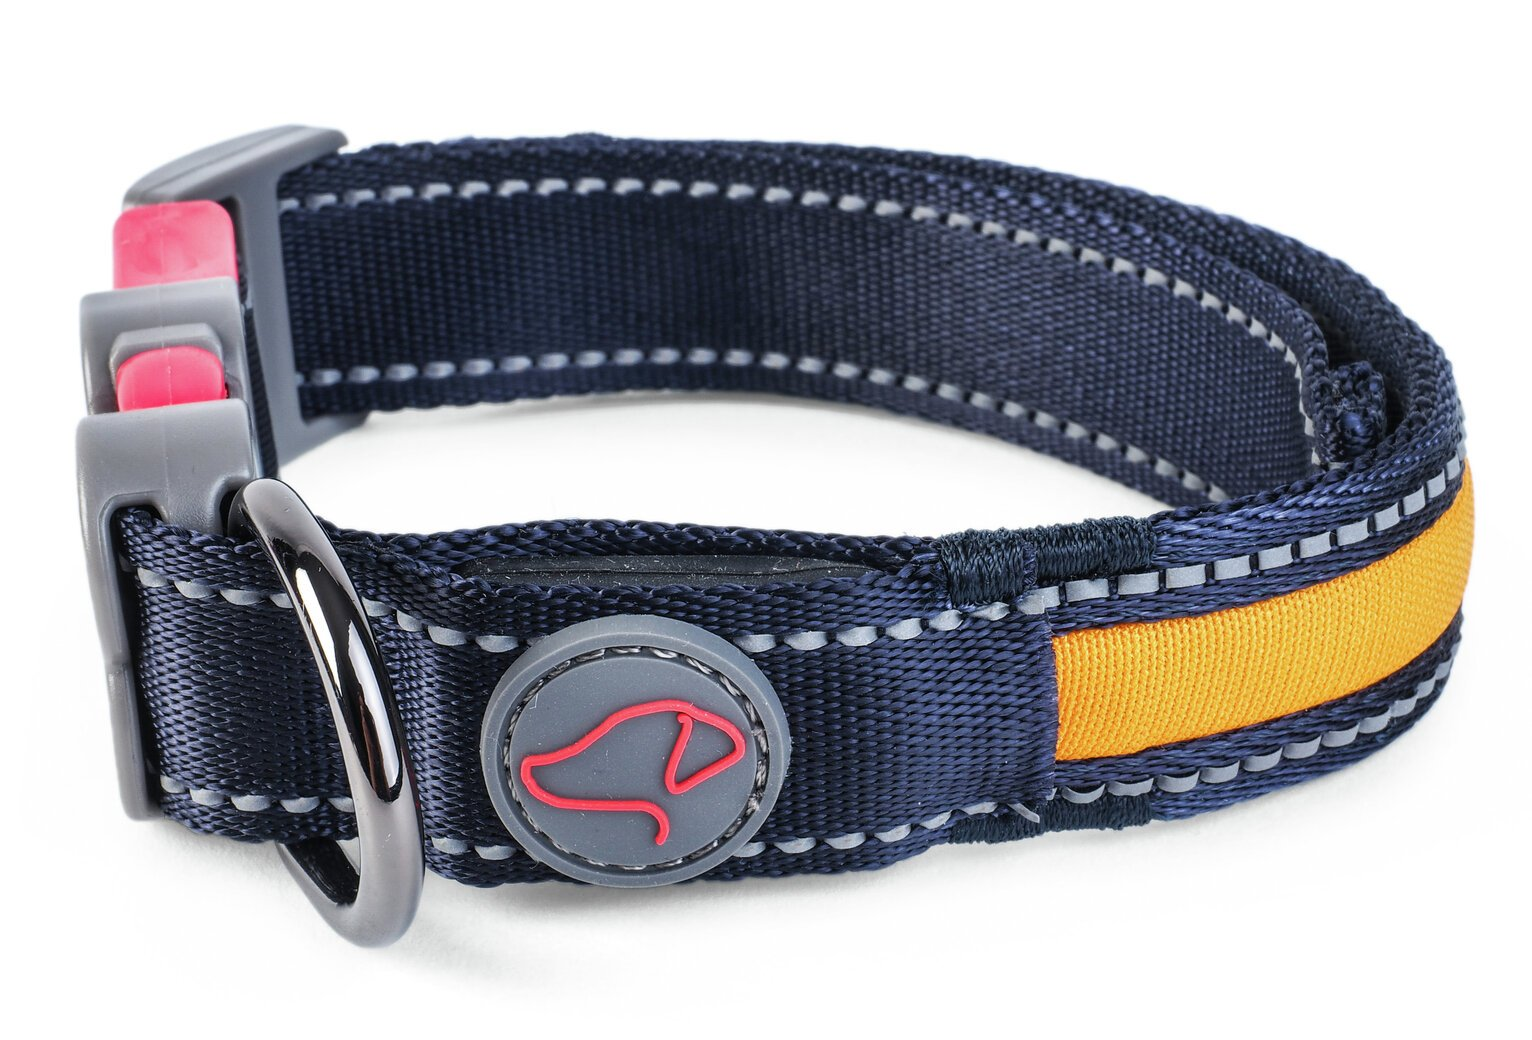 Zöon Flash and Go Rechargeable Collar - Large